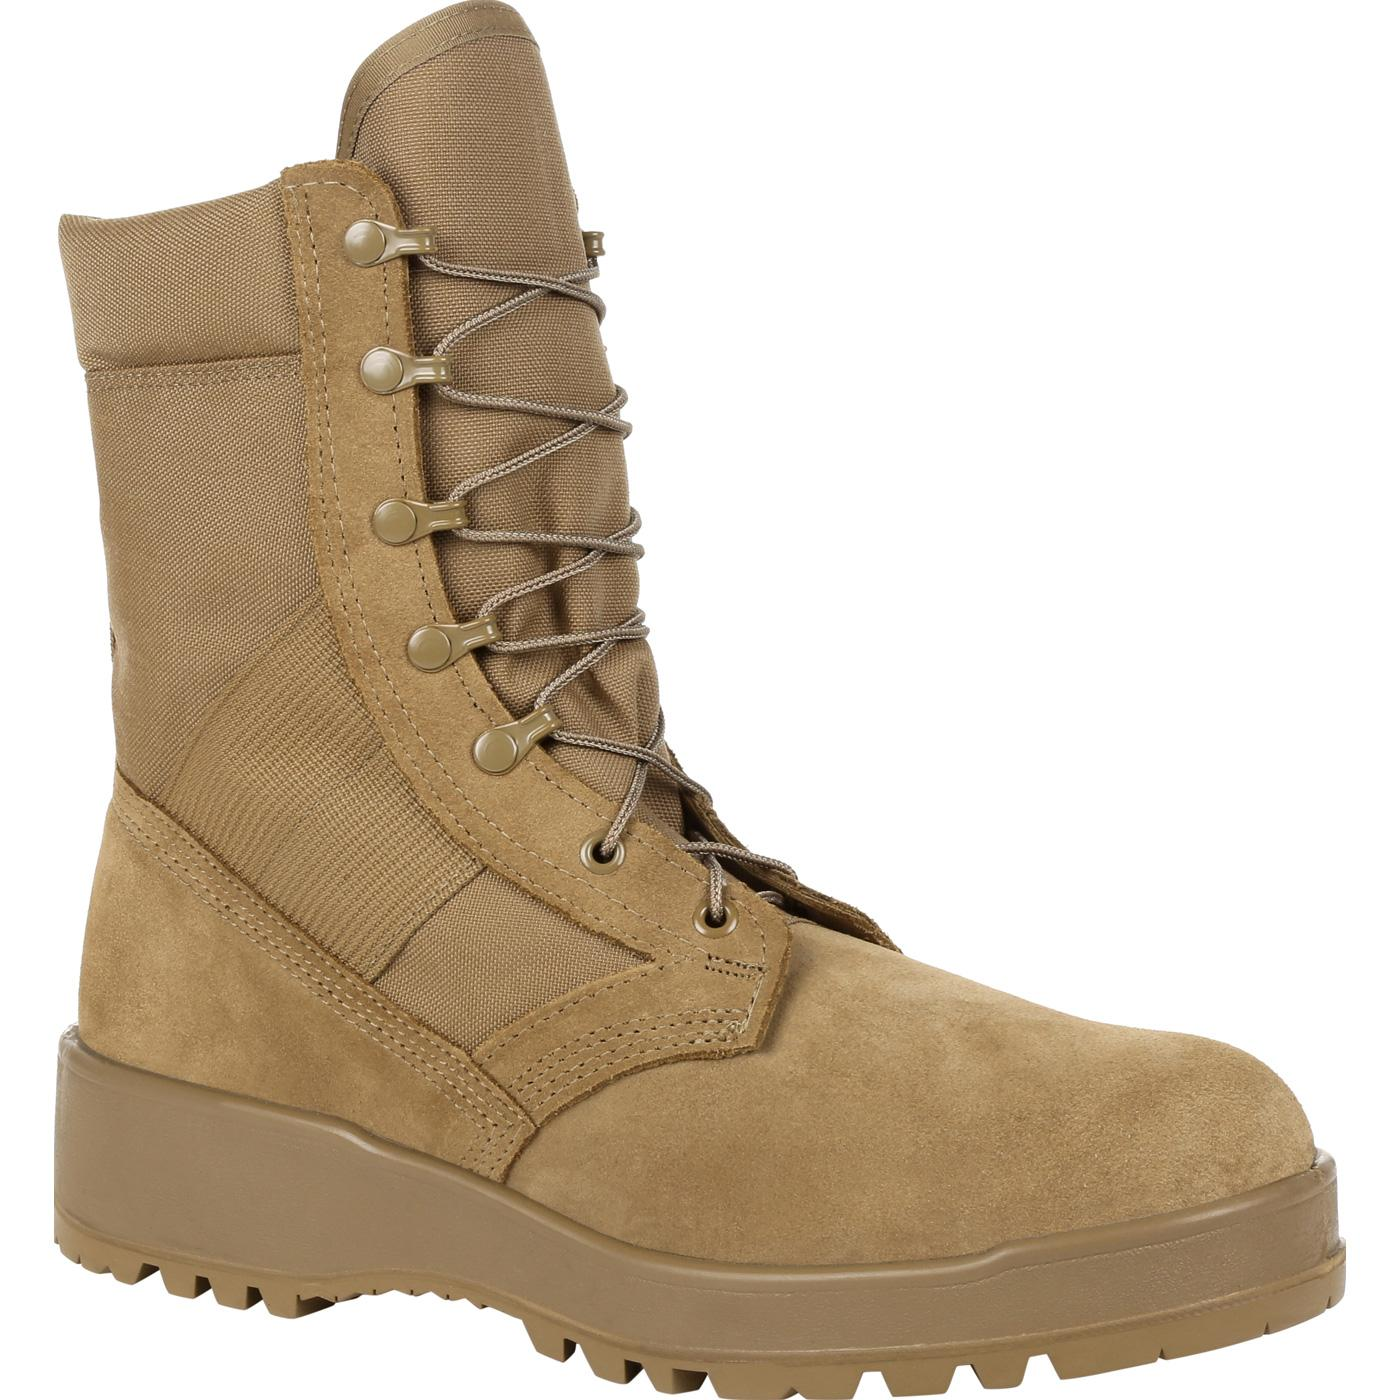 Rocky Entry Level Hot Weather Coyote Brown Military Boot RKC057 3afecc148